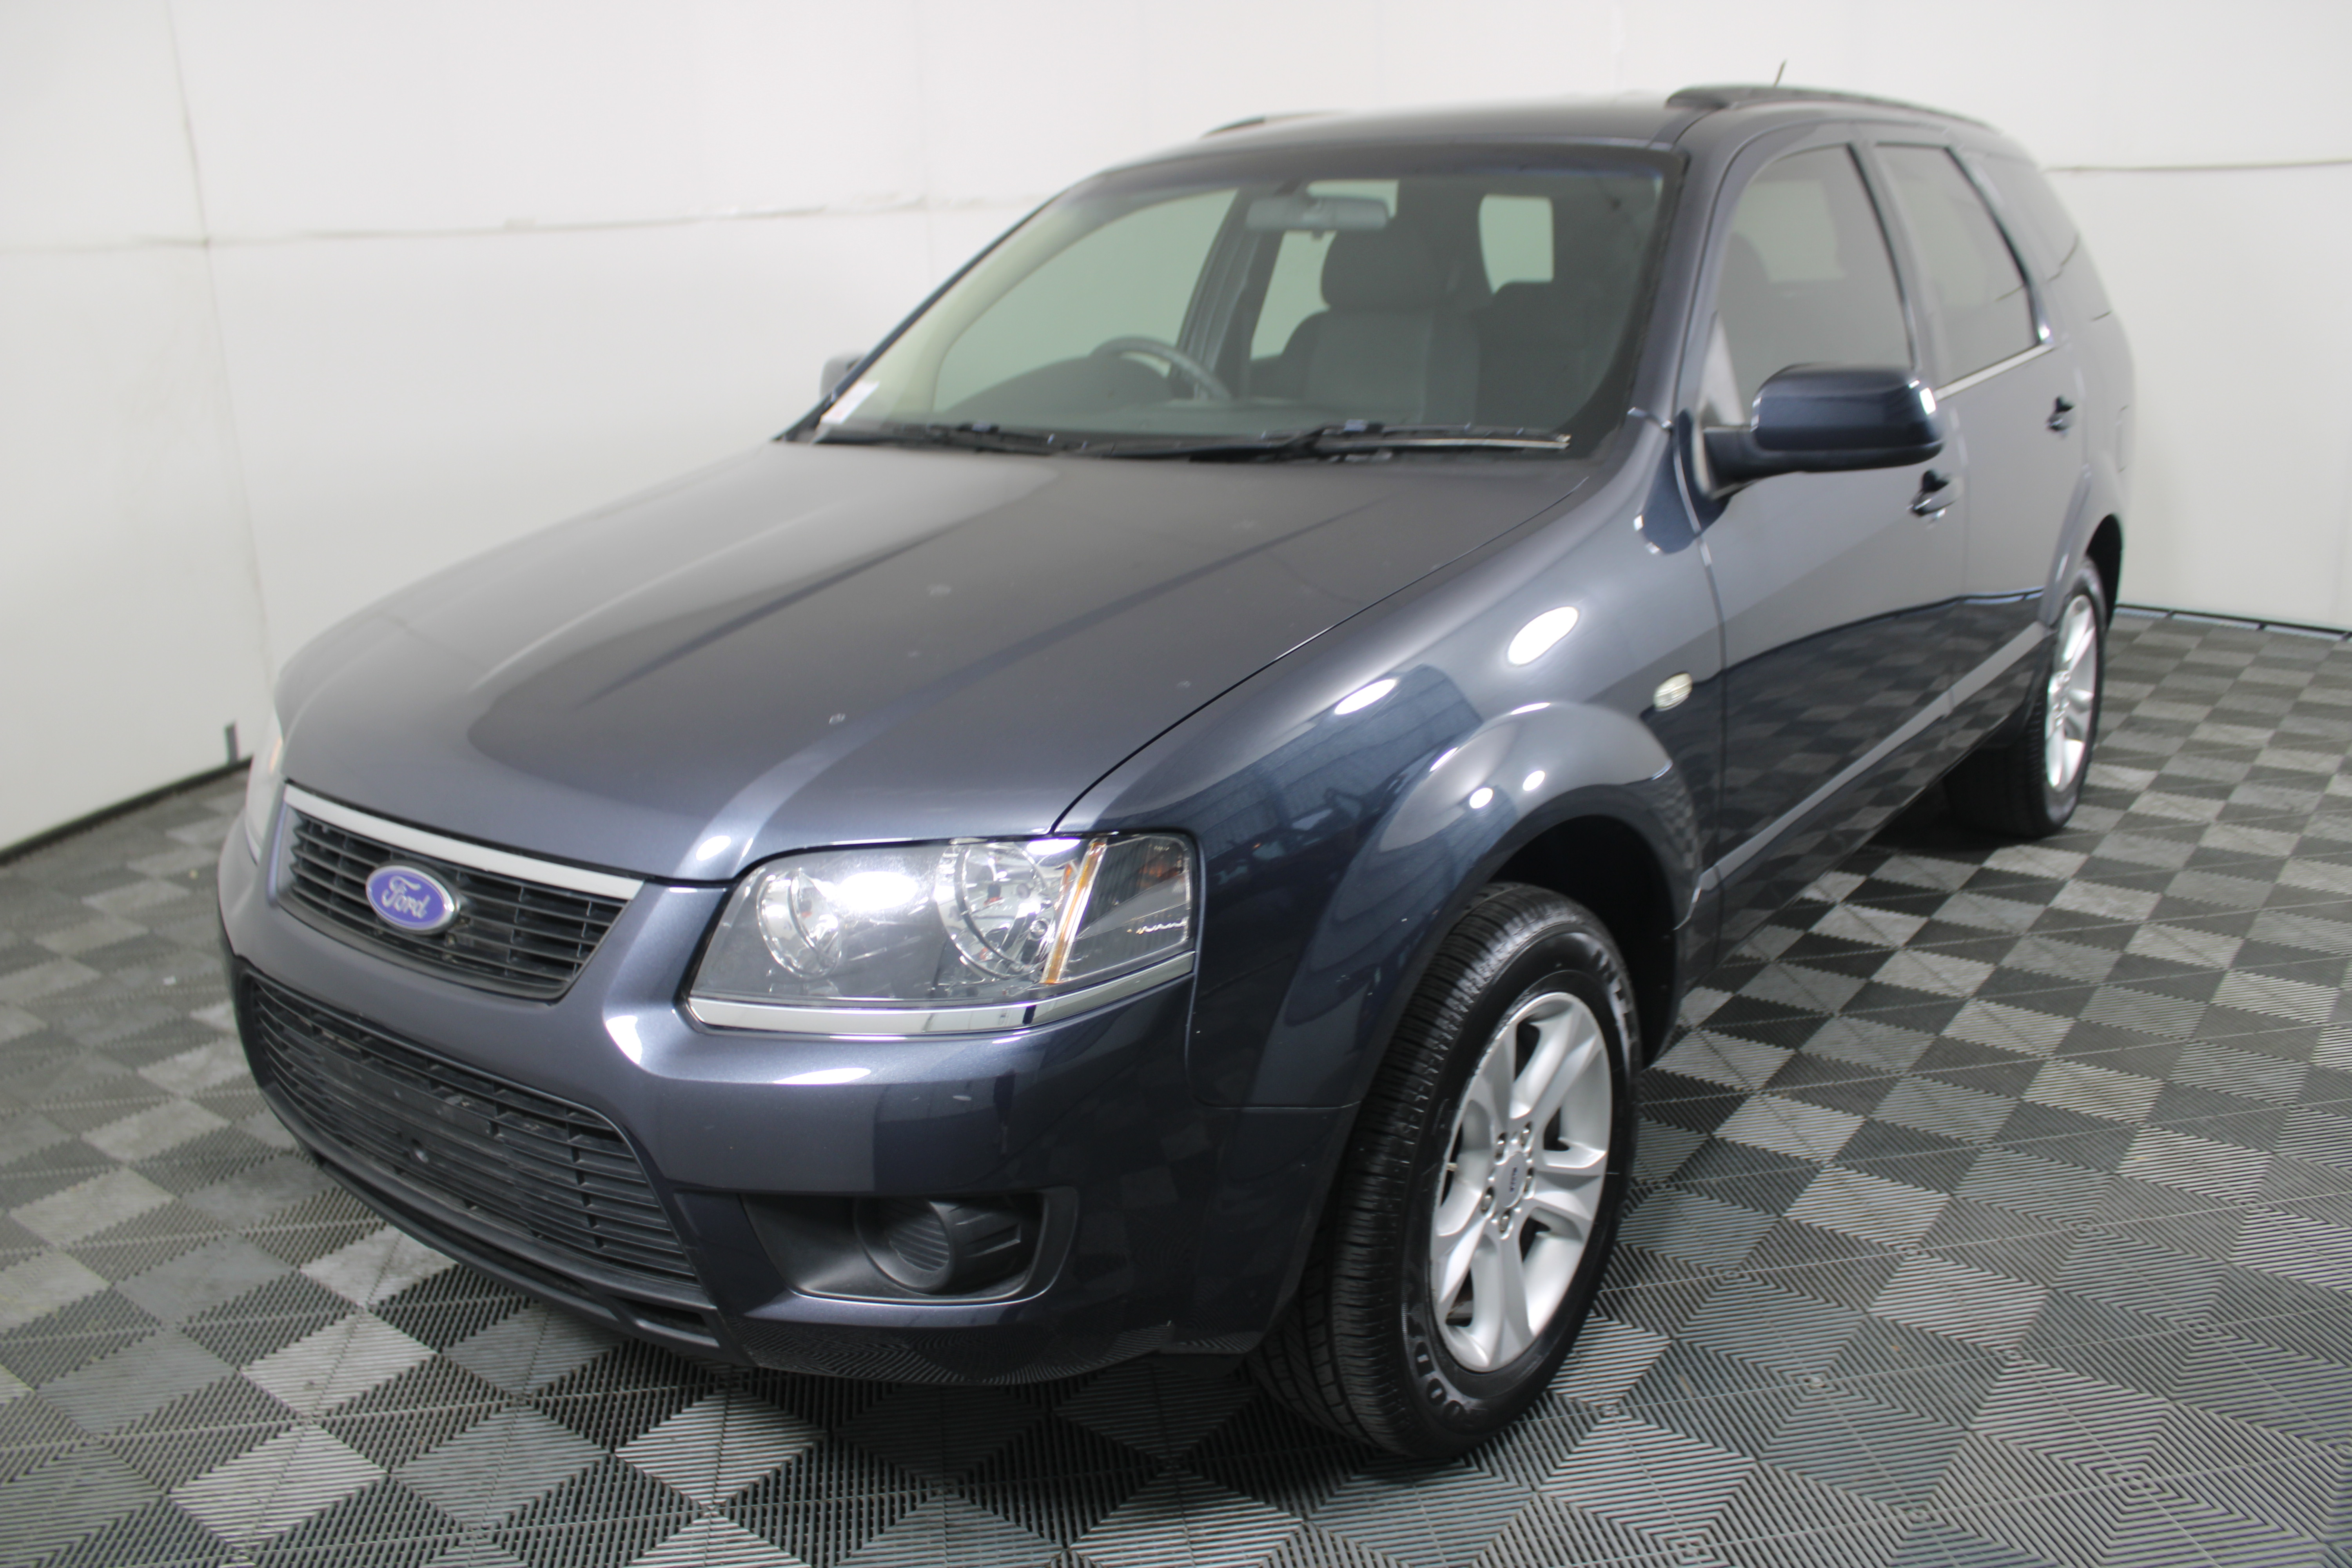 2010 Ford Territory SY MKII Automatic Wagon 35,646 Kms